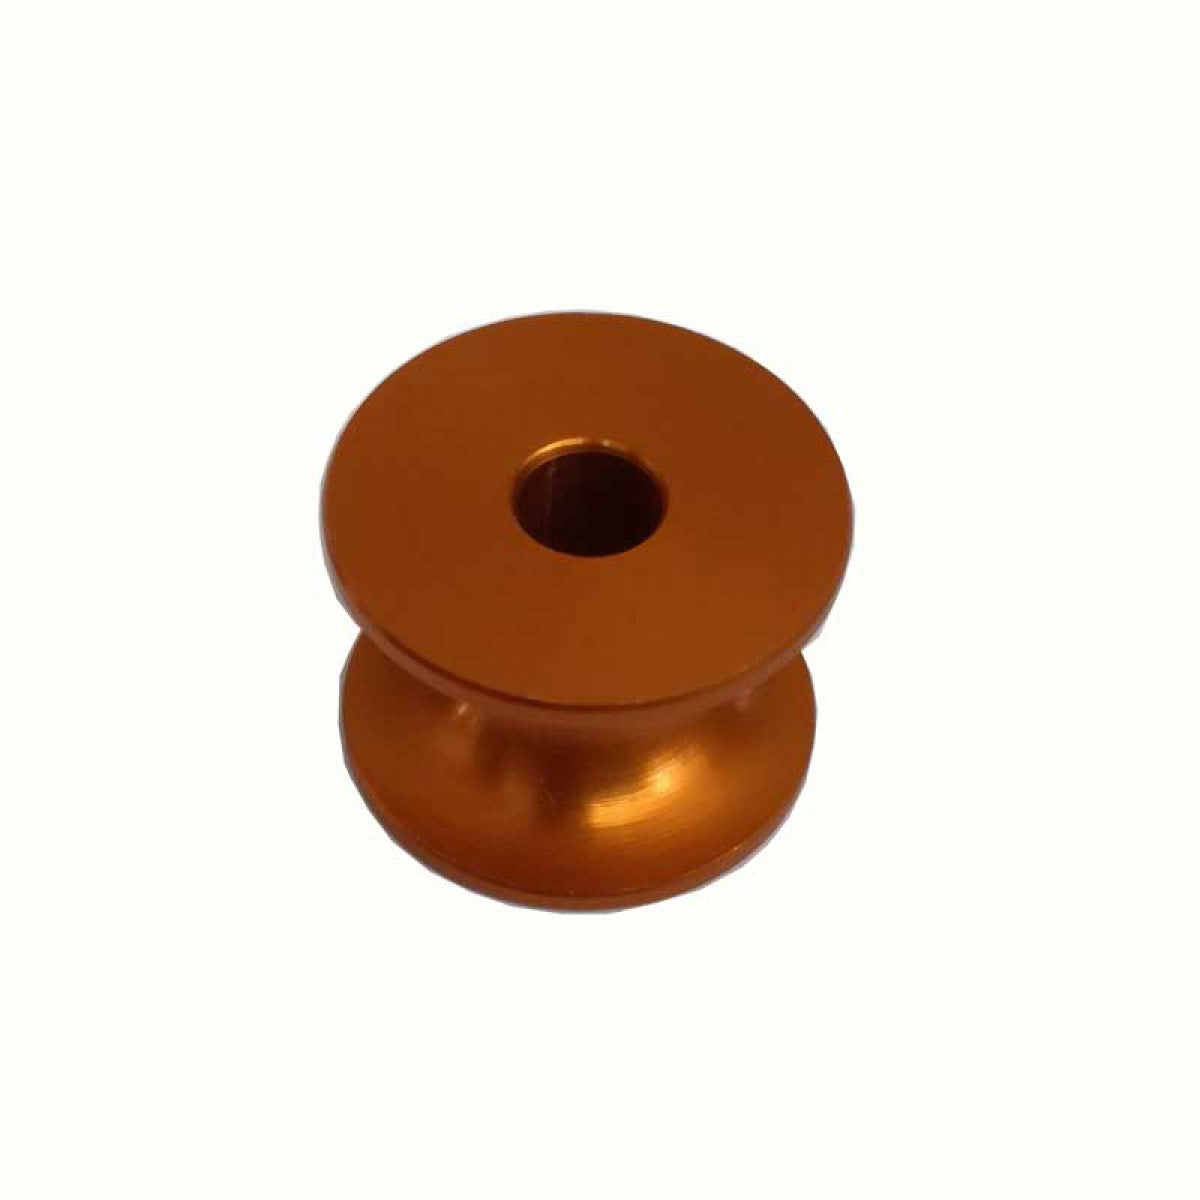 Engine aluminum spacer 2cm (1pc)